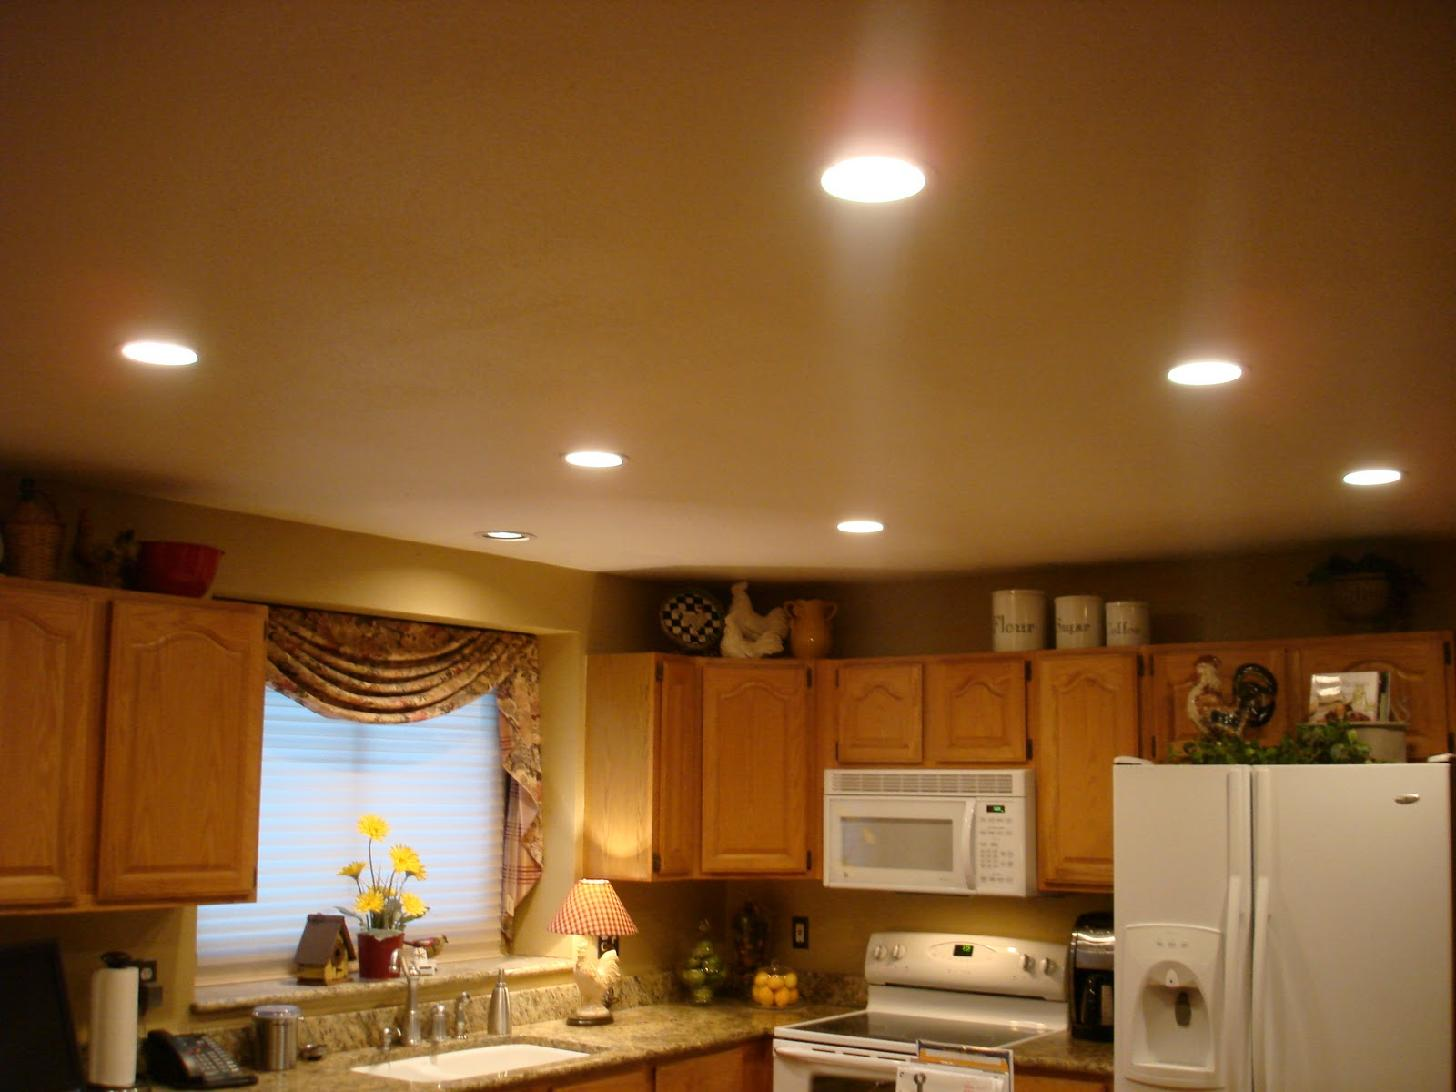 http://distinctvariations.com/wp-content/uploads/2014/06/lighting-fixtures-kitchen.jpg